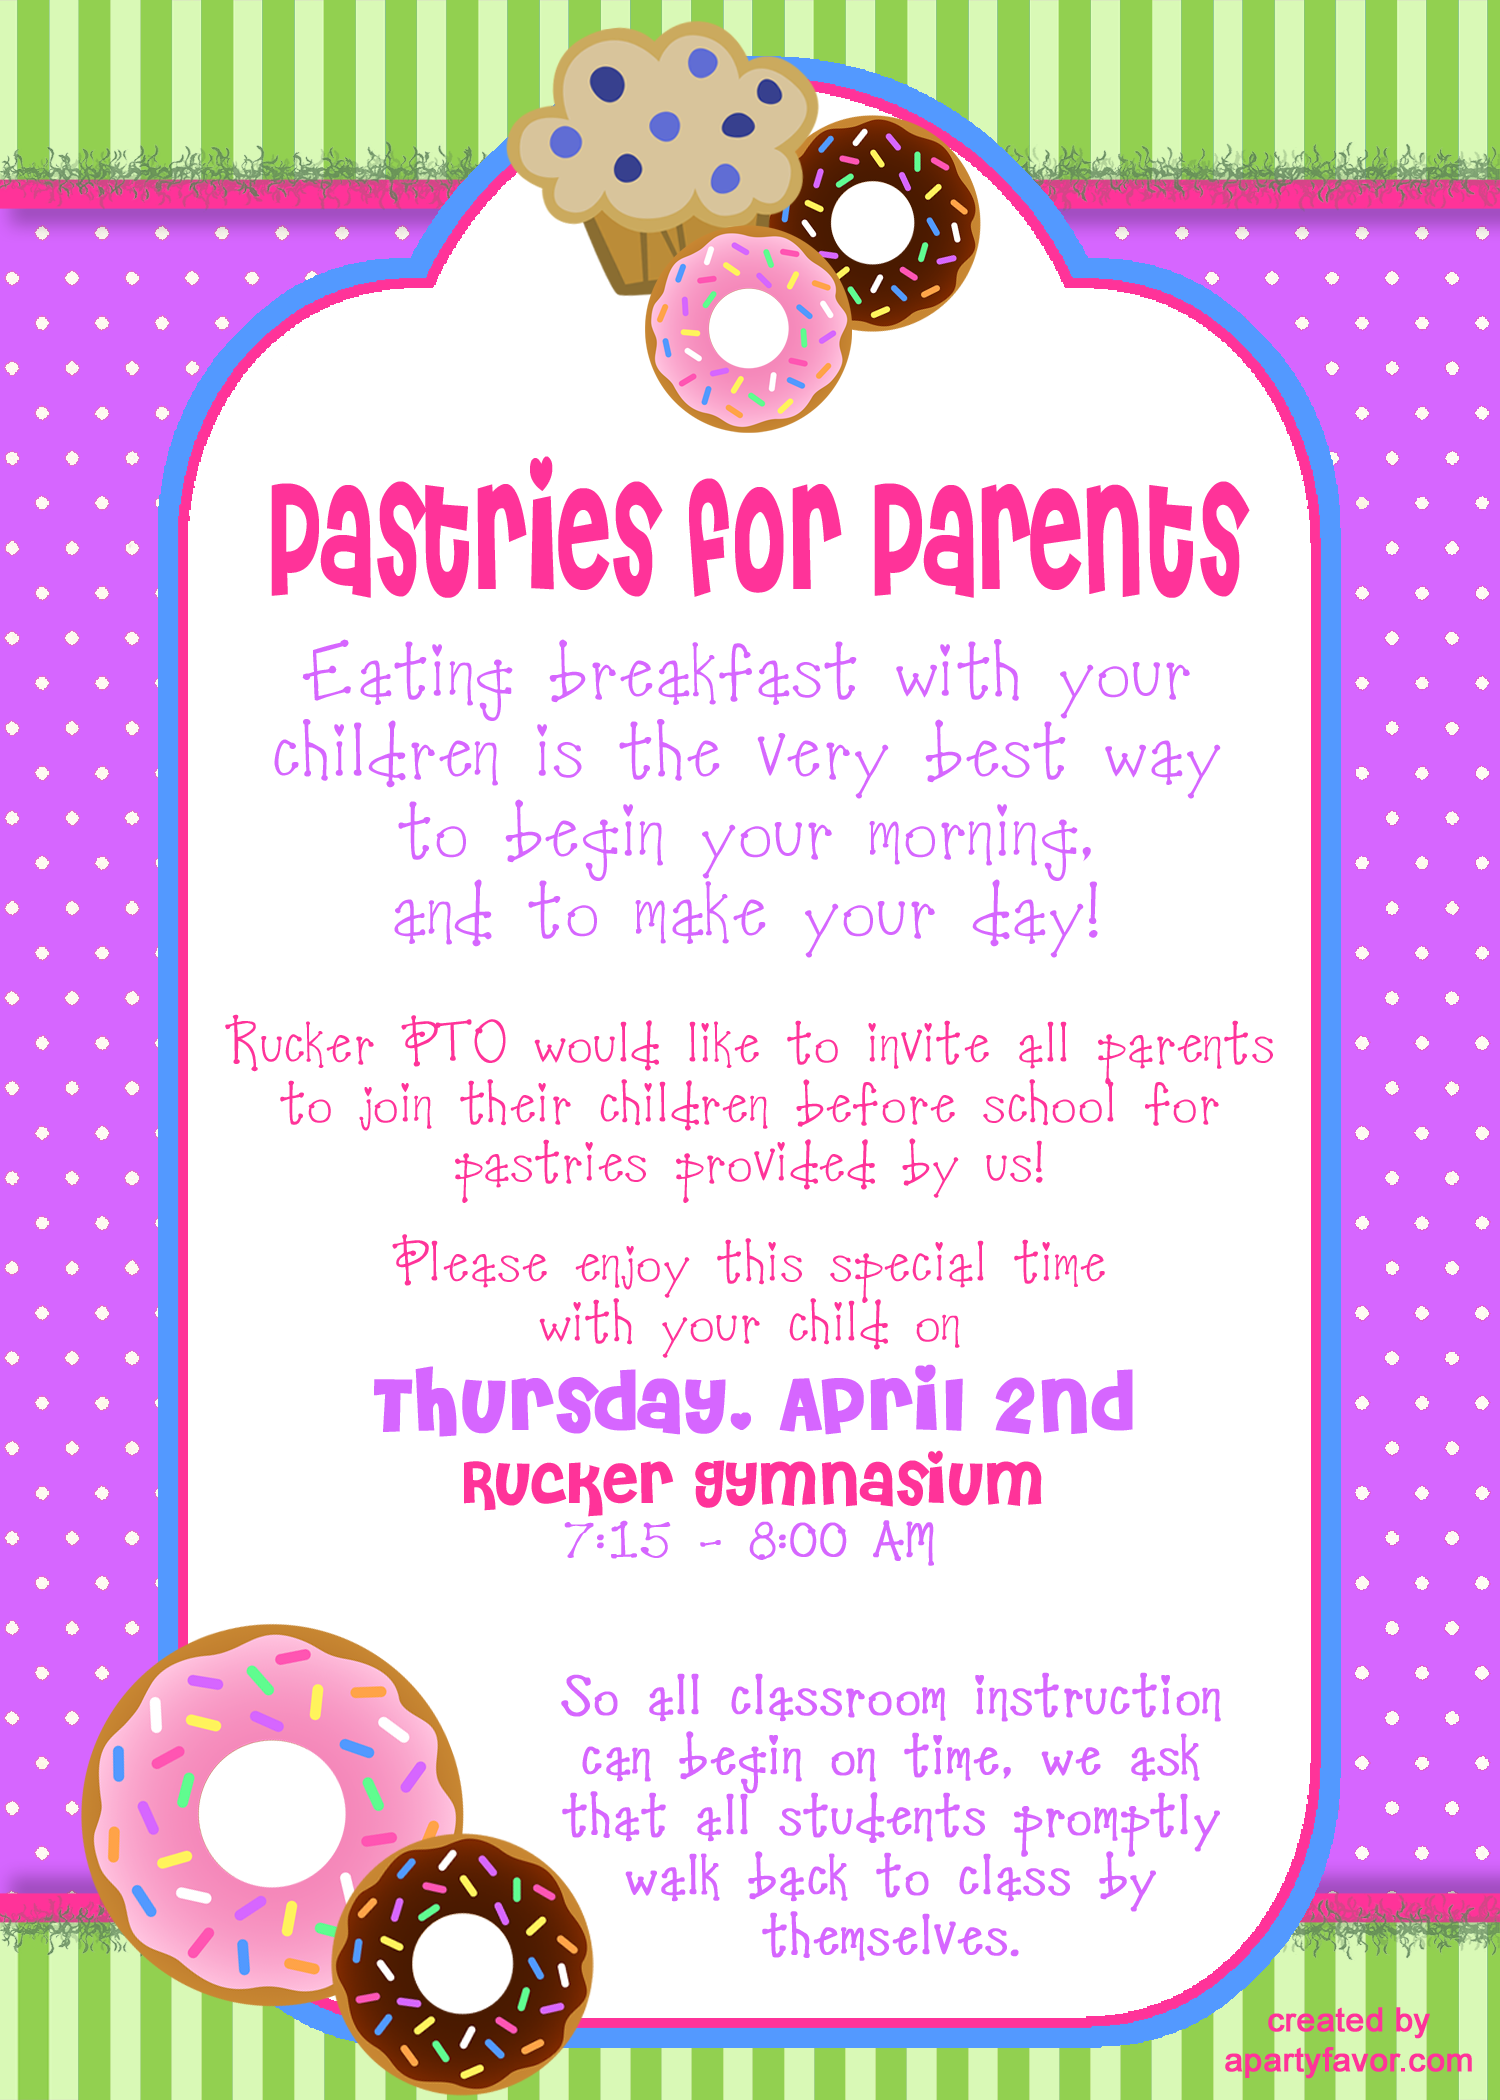 event flyer for pastries for parents event advertising event flyer for pastries for parents